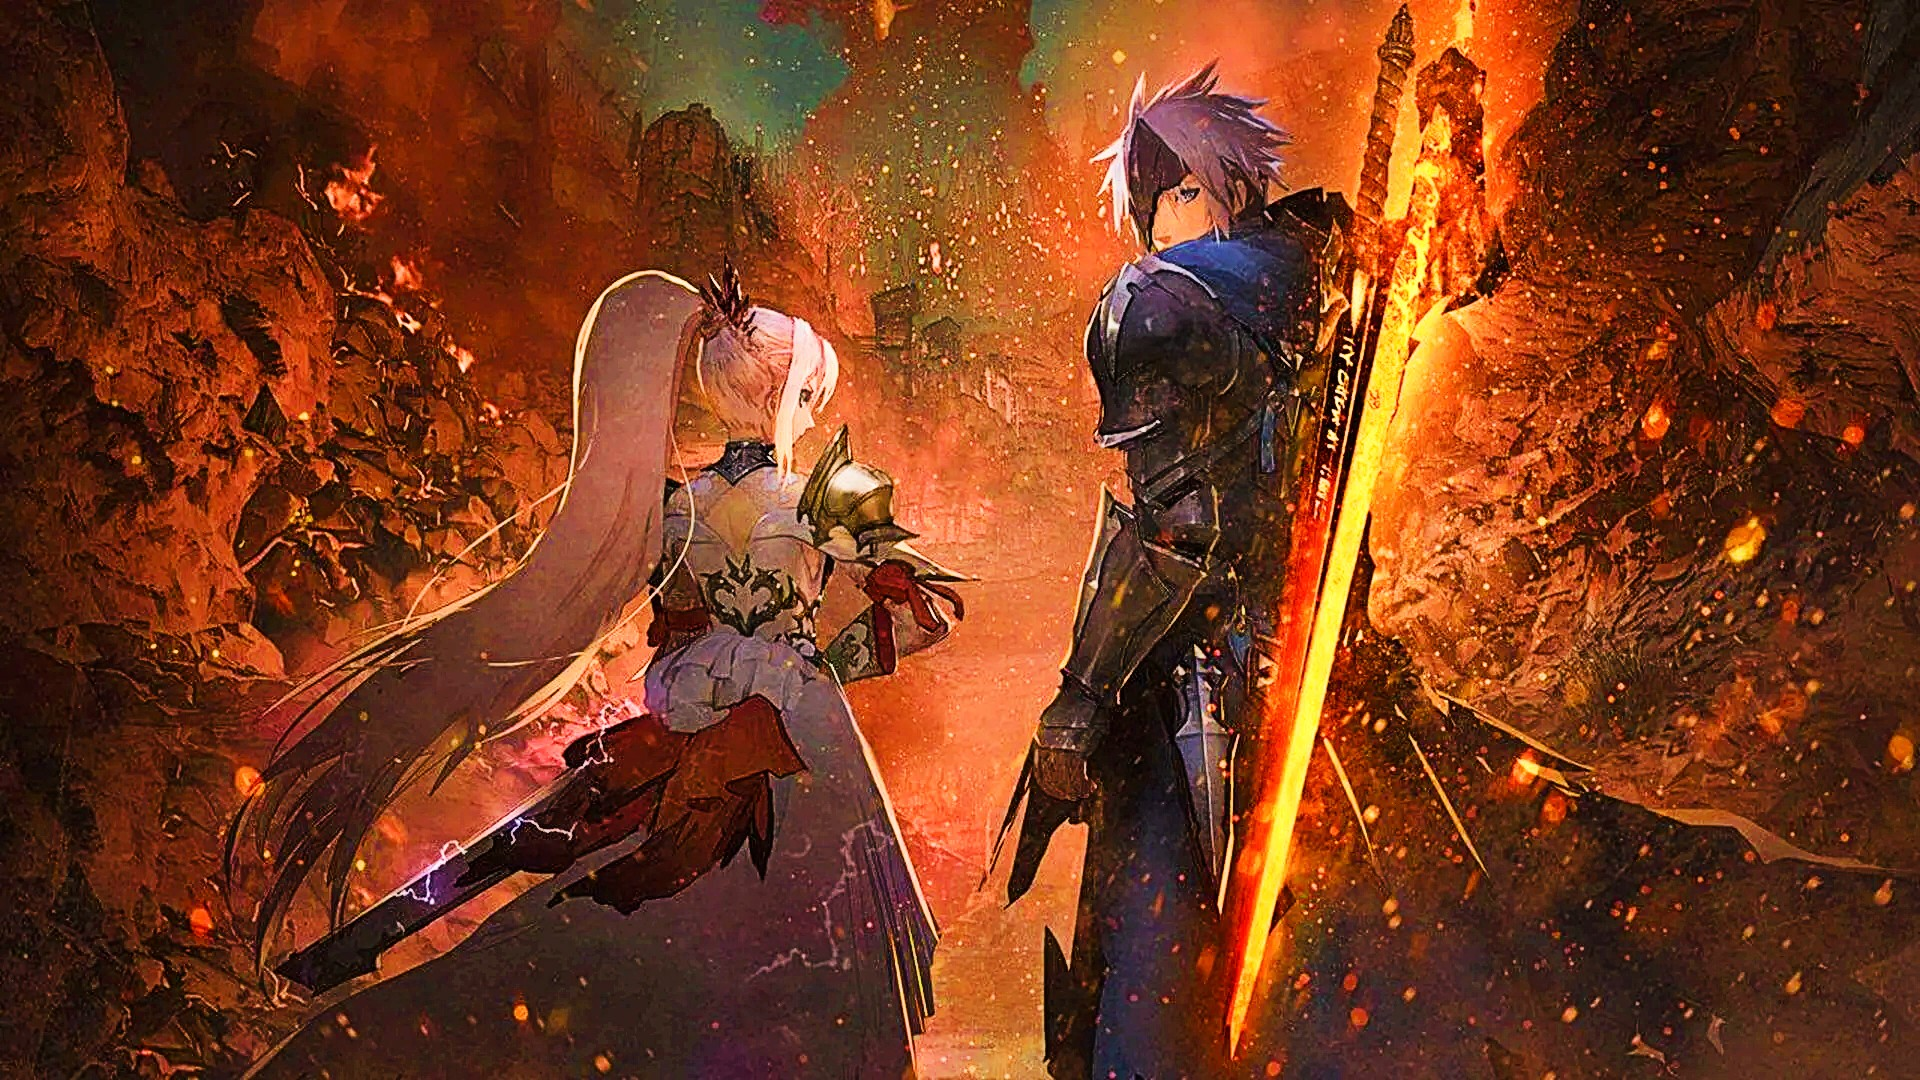 Tales of Arise review – a glorious JRPG anime romp